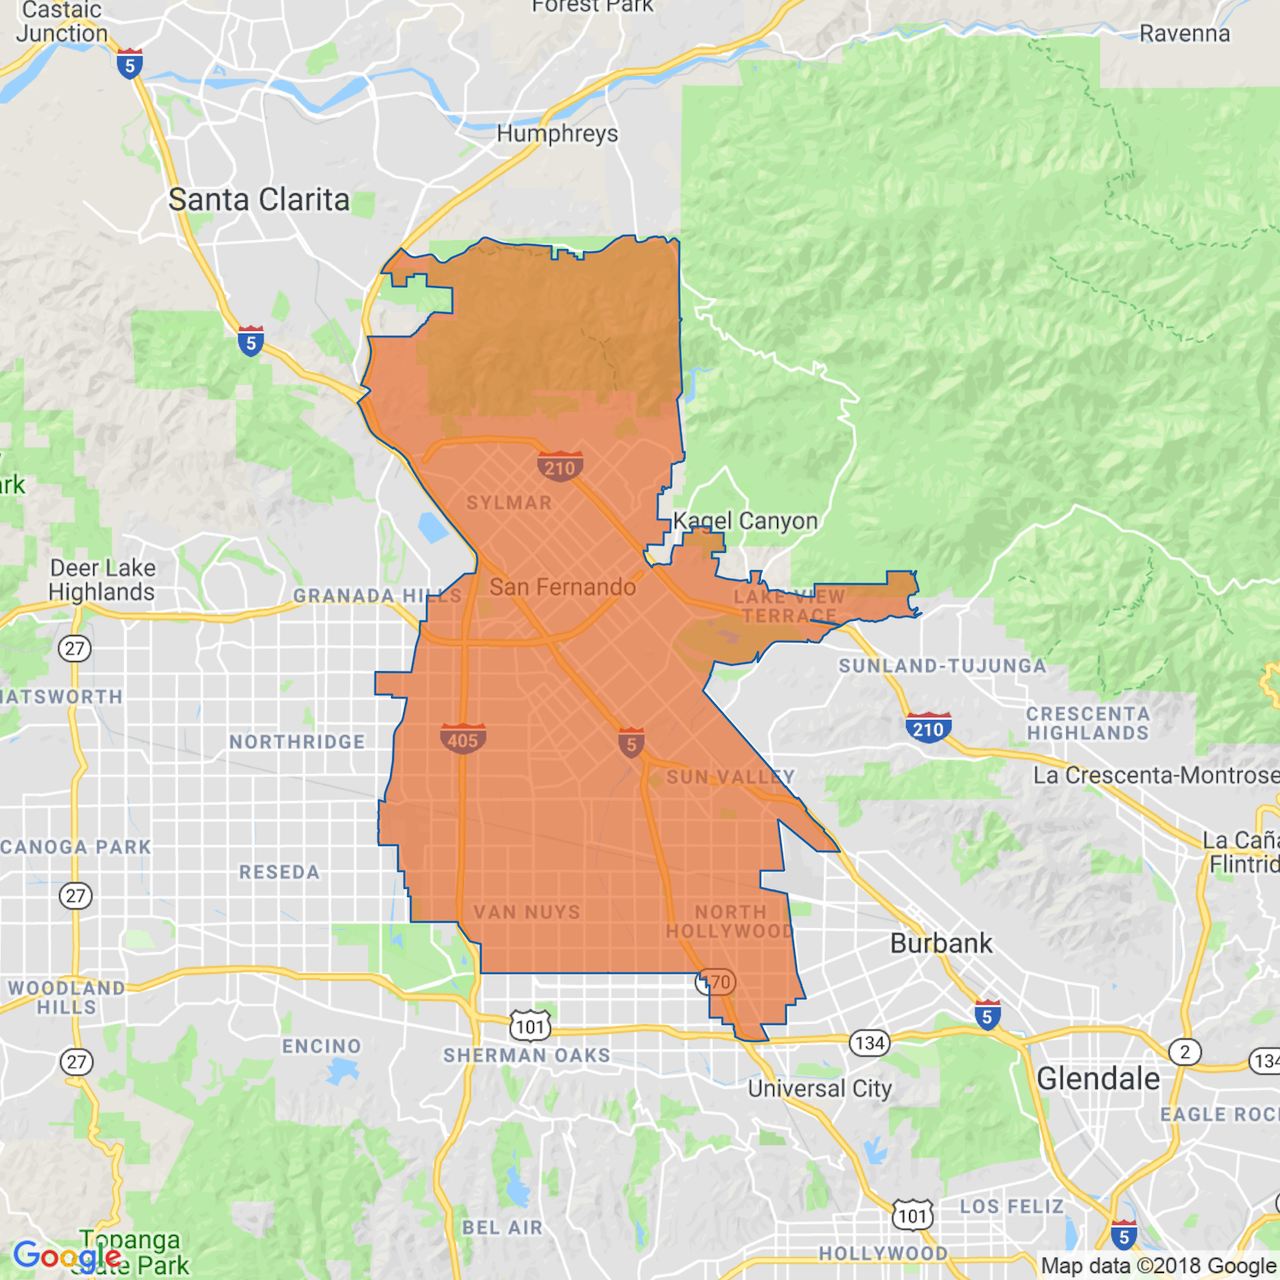 image of Congressional District 29